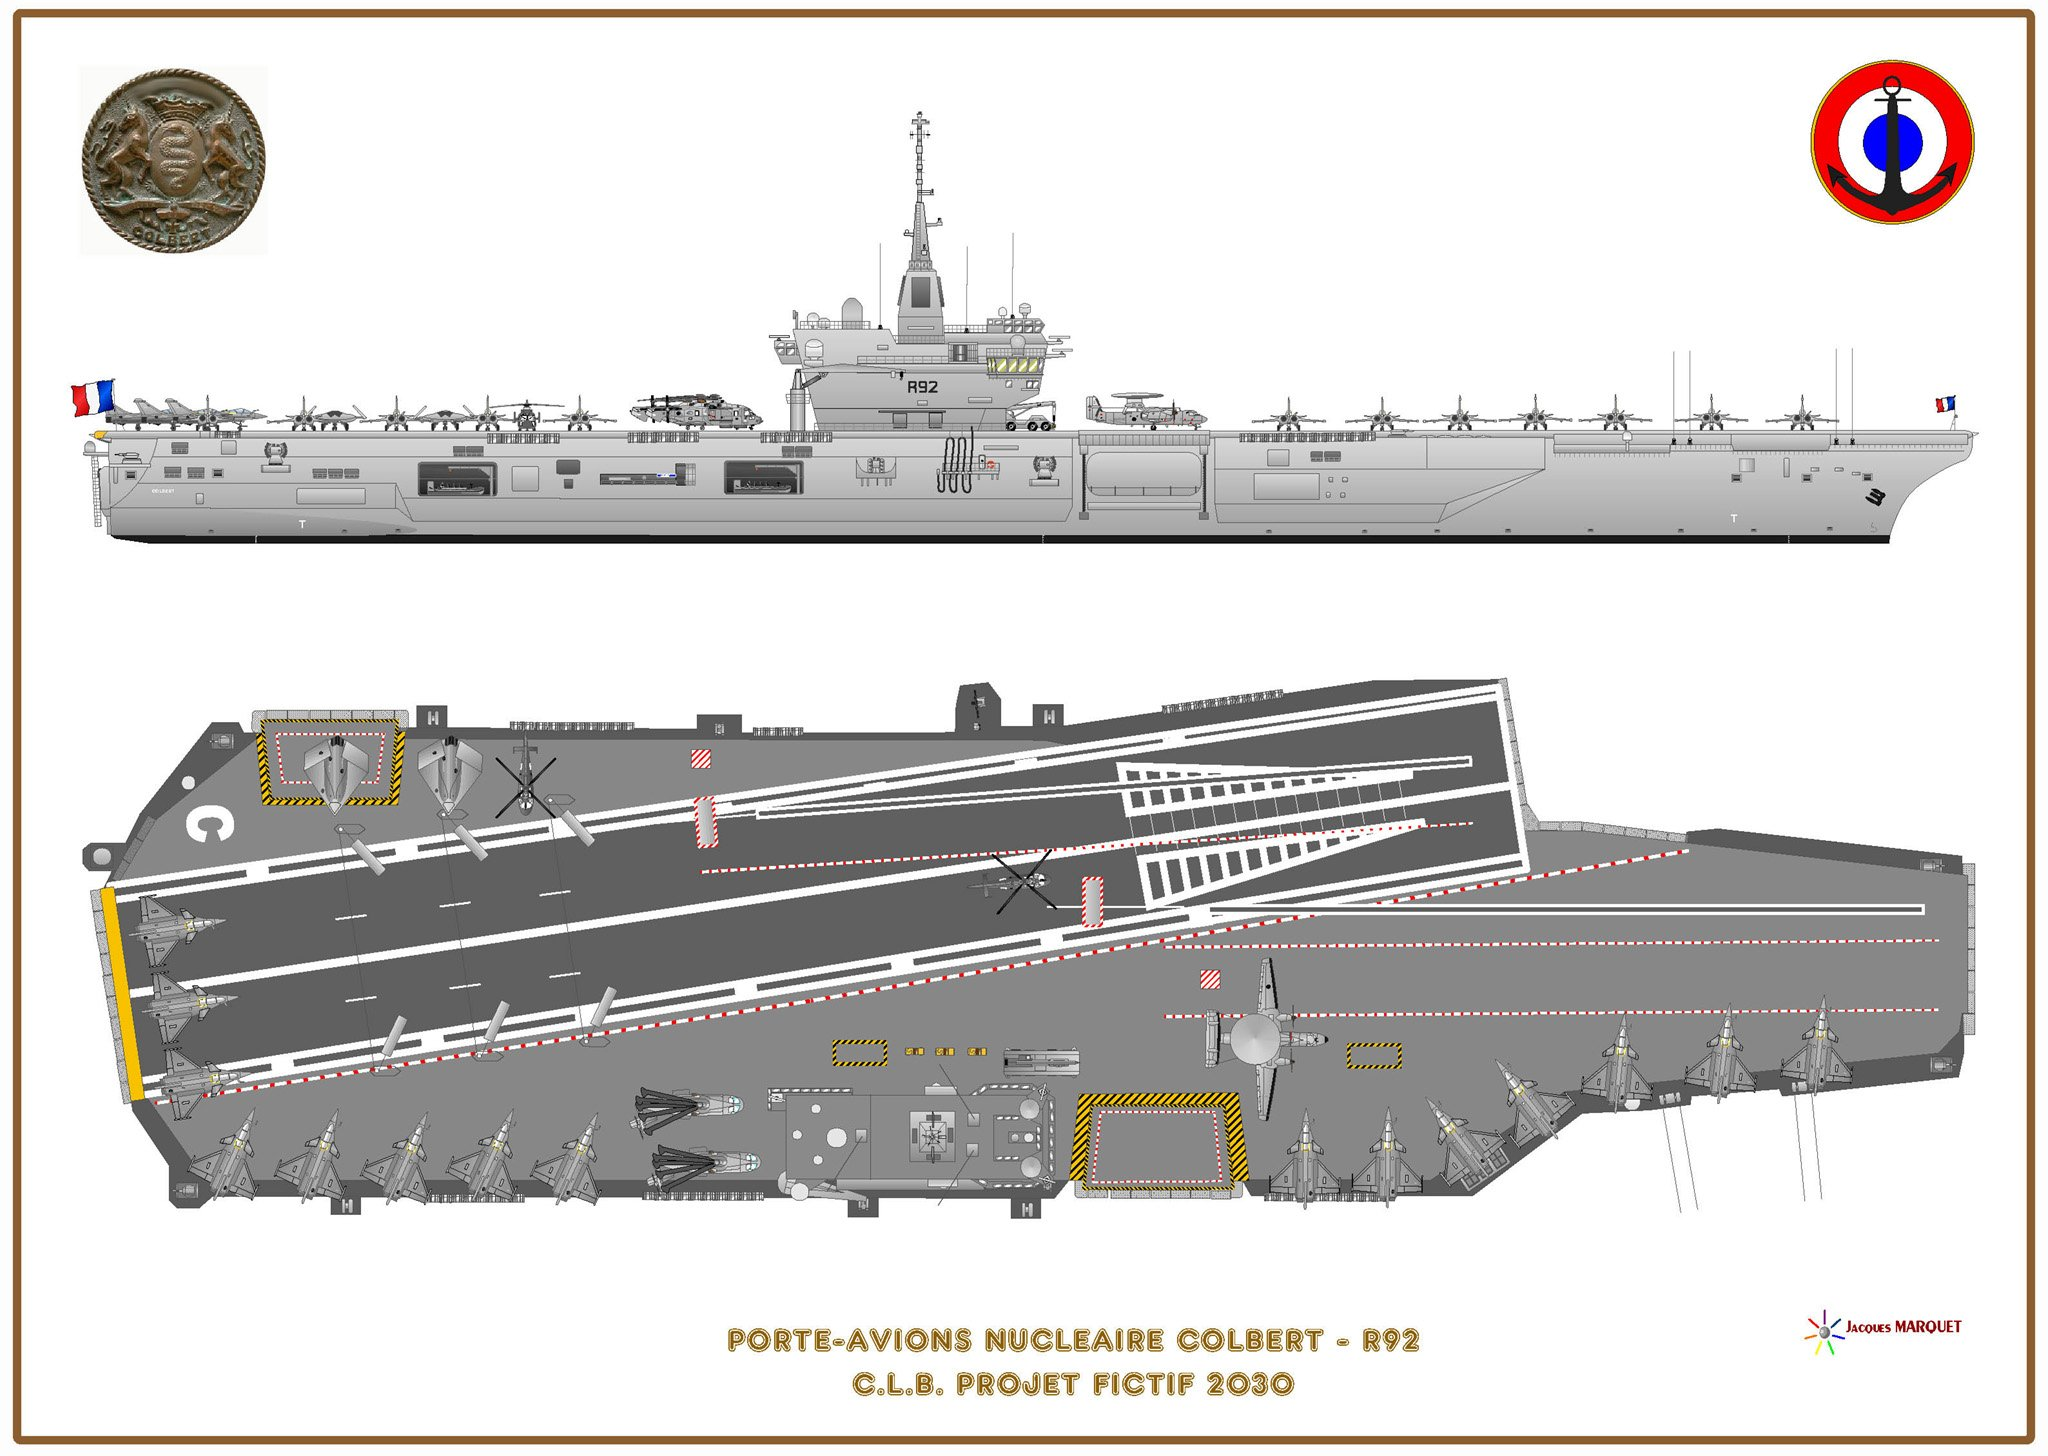 France Meets with Some Difficulties in Design of Its New Aircraft Carrier